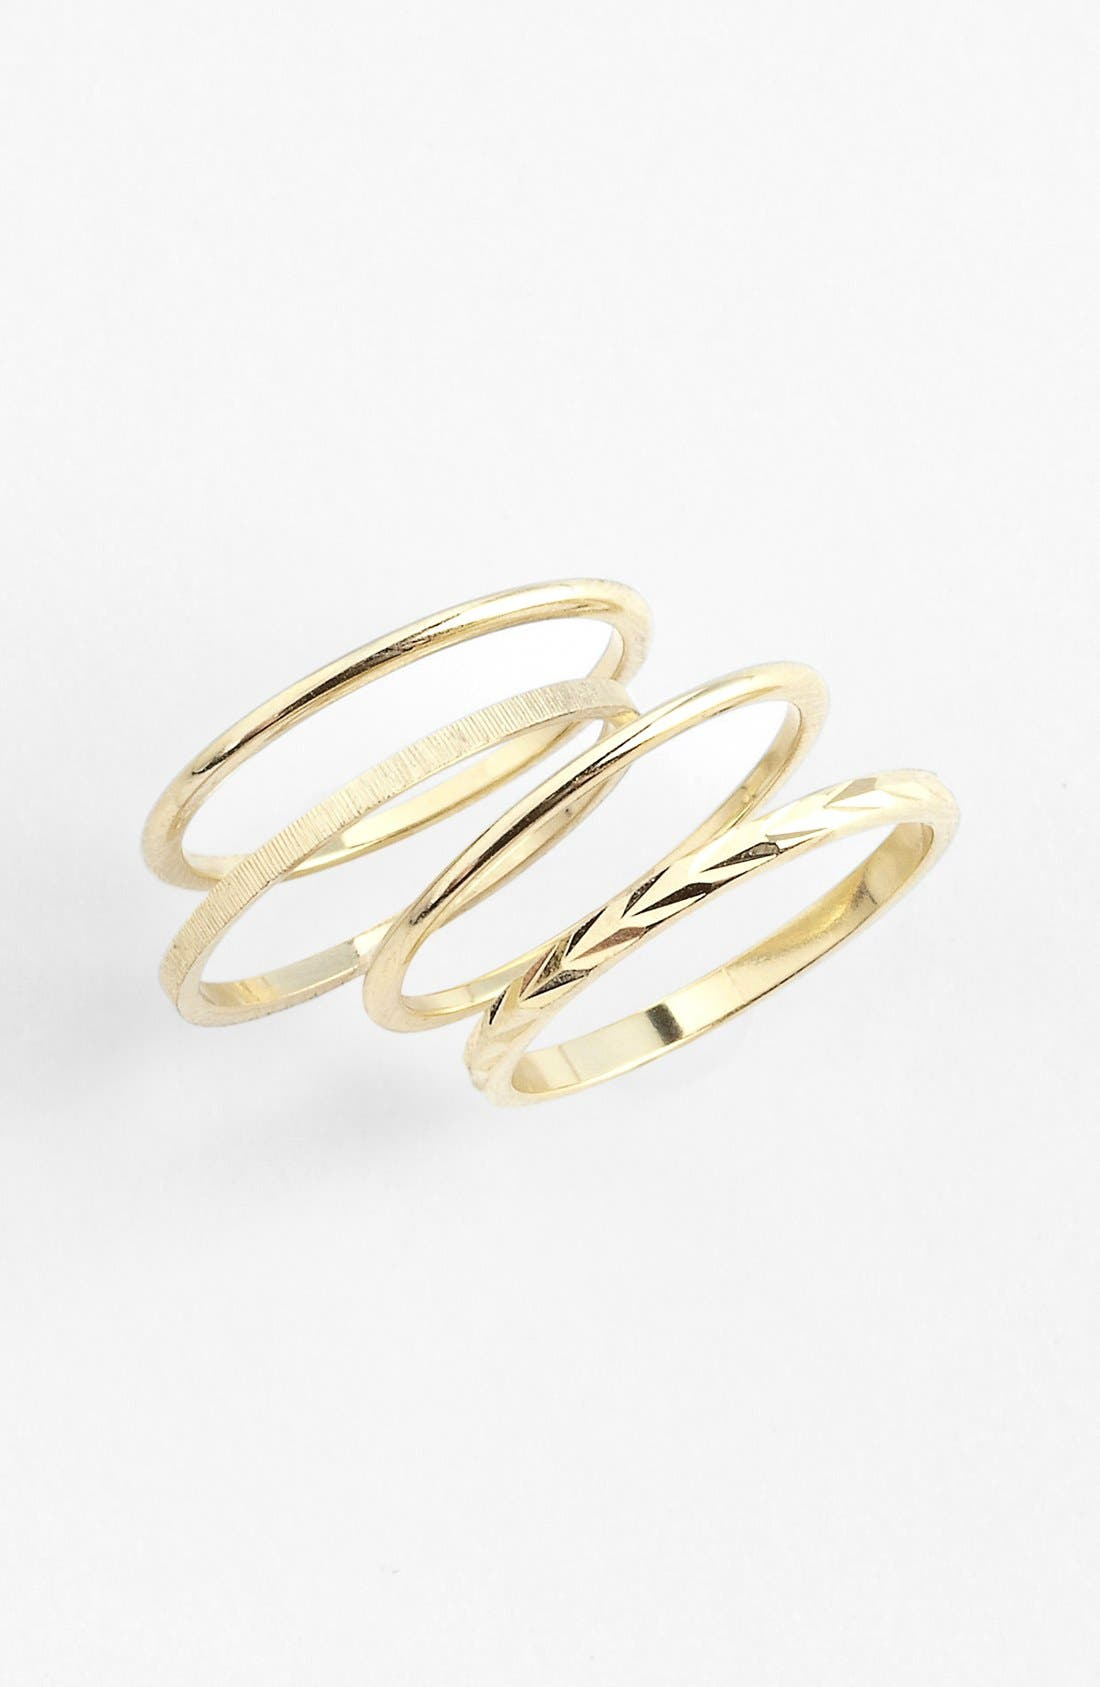 Alternate Image 1 Selected - Bonnie Jonas Midi Rings (Set of 4)